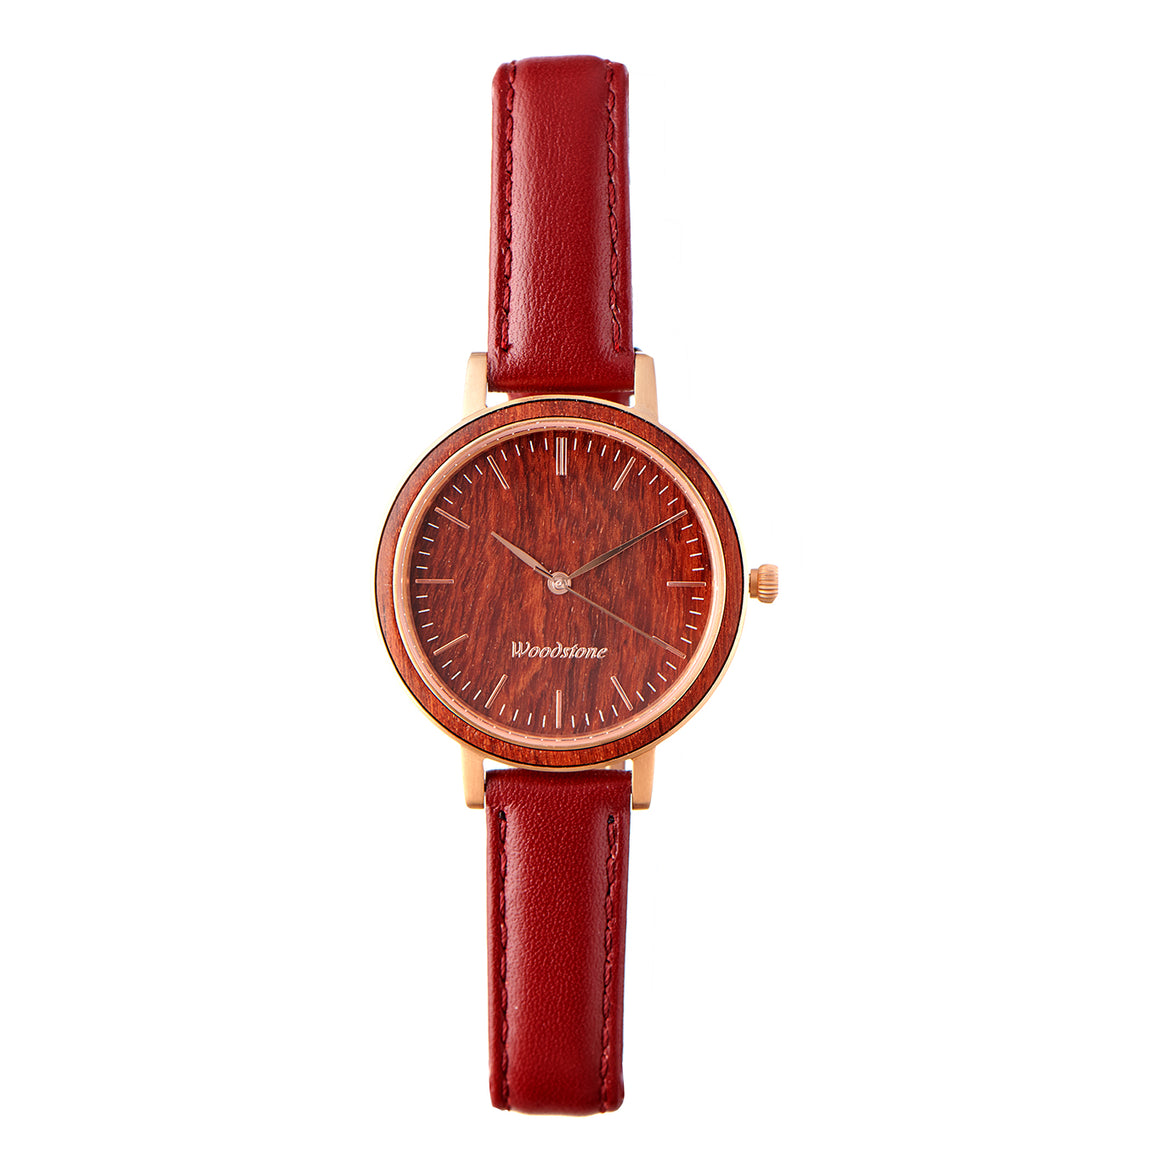 Woodstone Serenity Rosewood Women's Wooden Watches - Rosegold